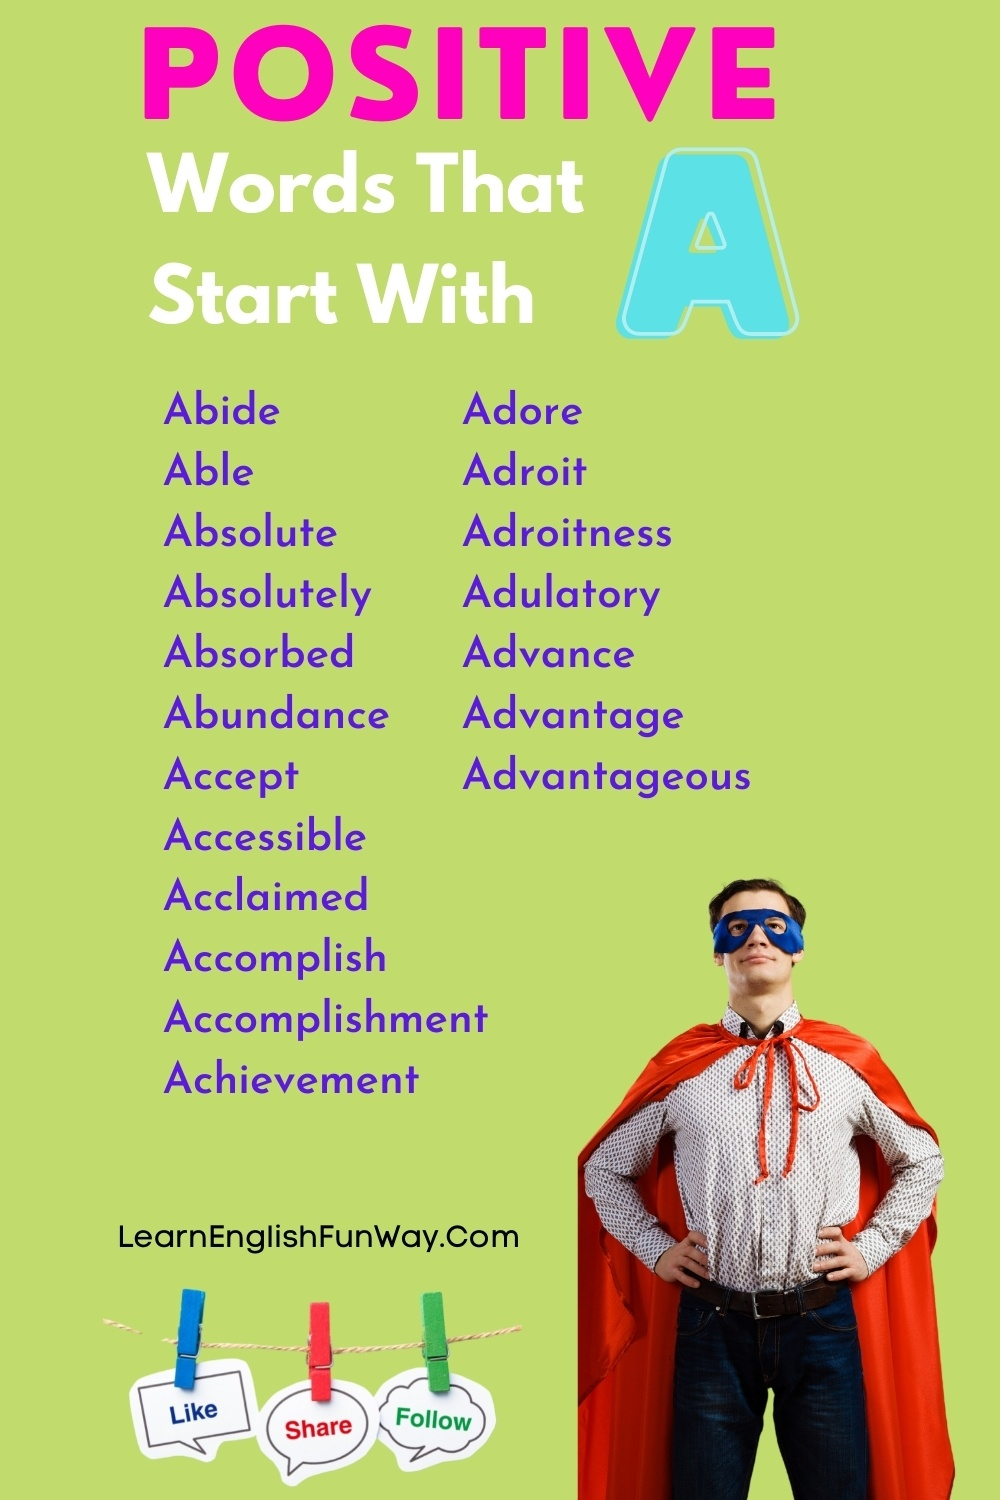 list of positive words that start with A - Positive Words That Start With A